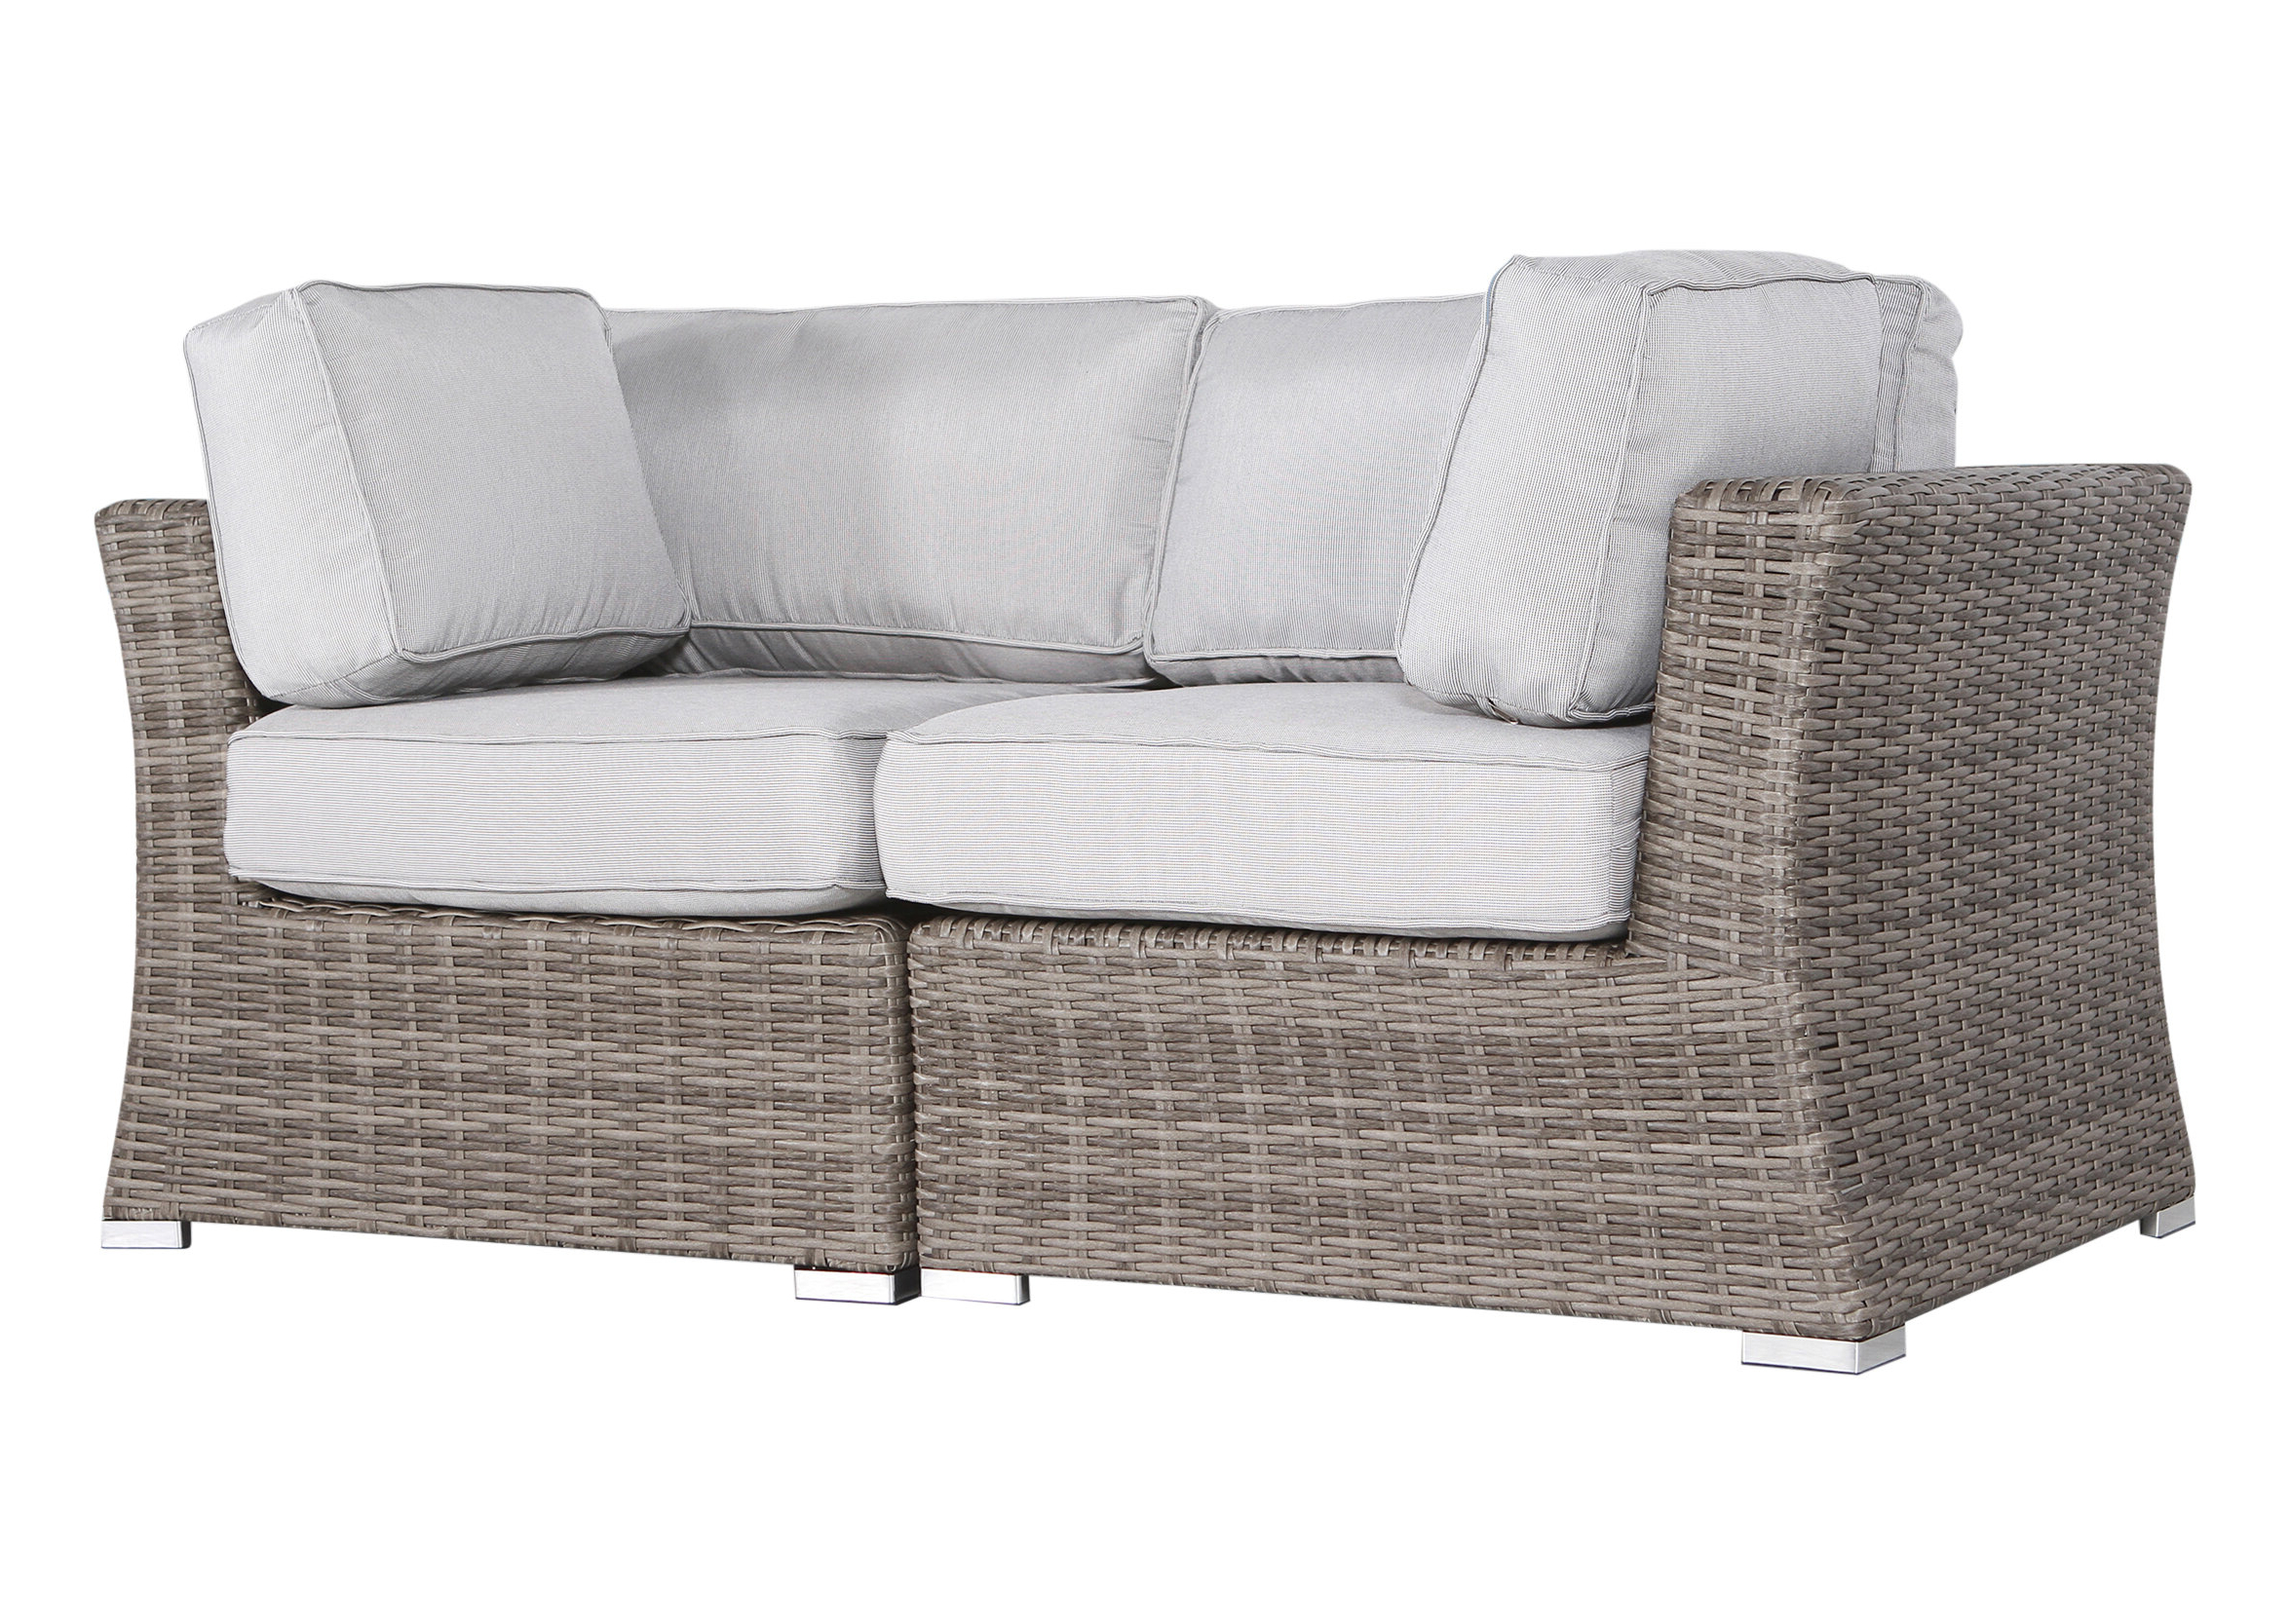 Huddleson Loveseats With Cushion Pertaining To Trendy Huddleson Contemporary Loveseat With Cushion (Gallery 4 of 20)